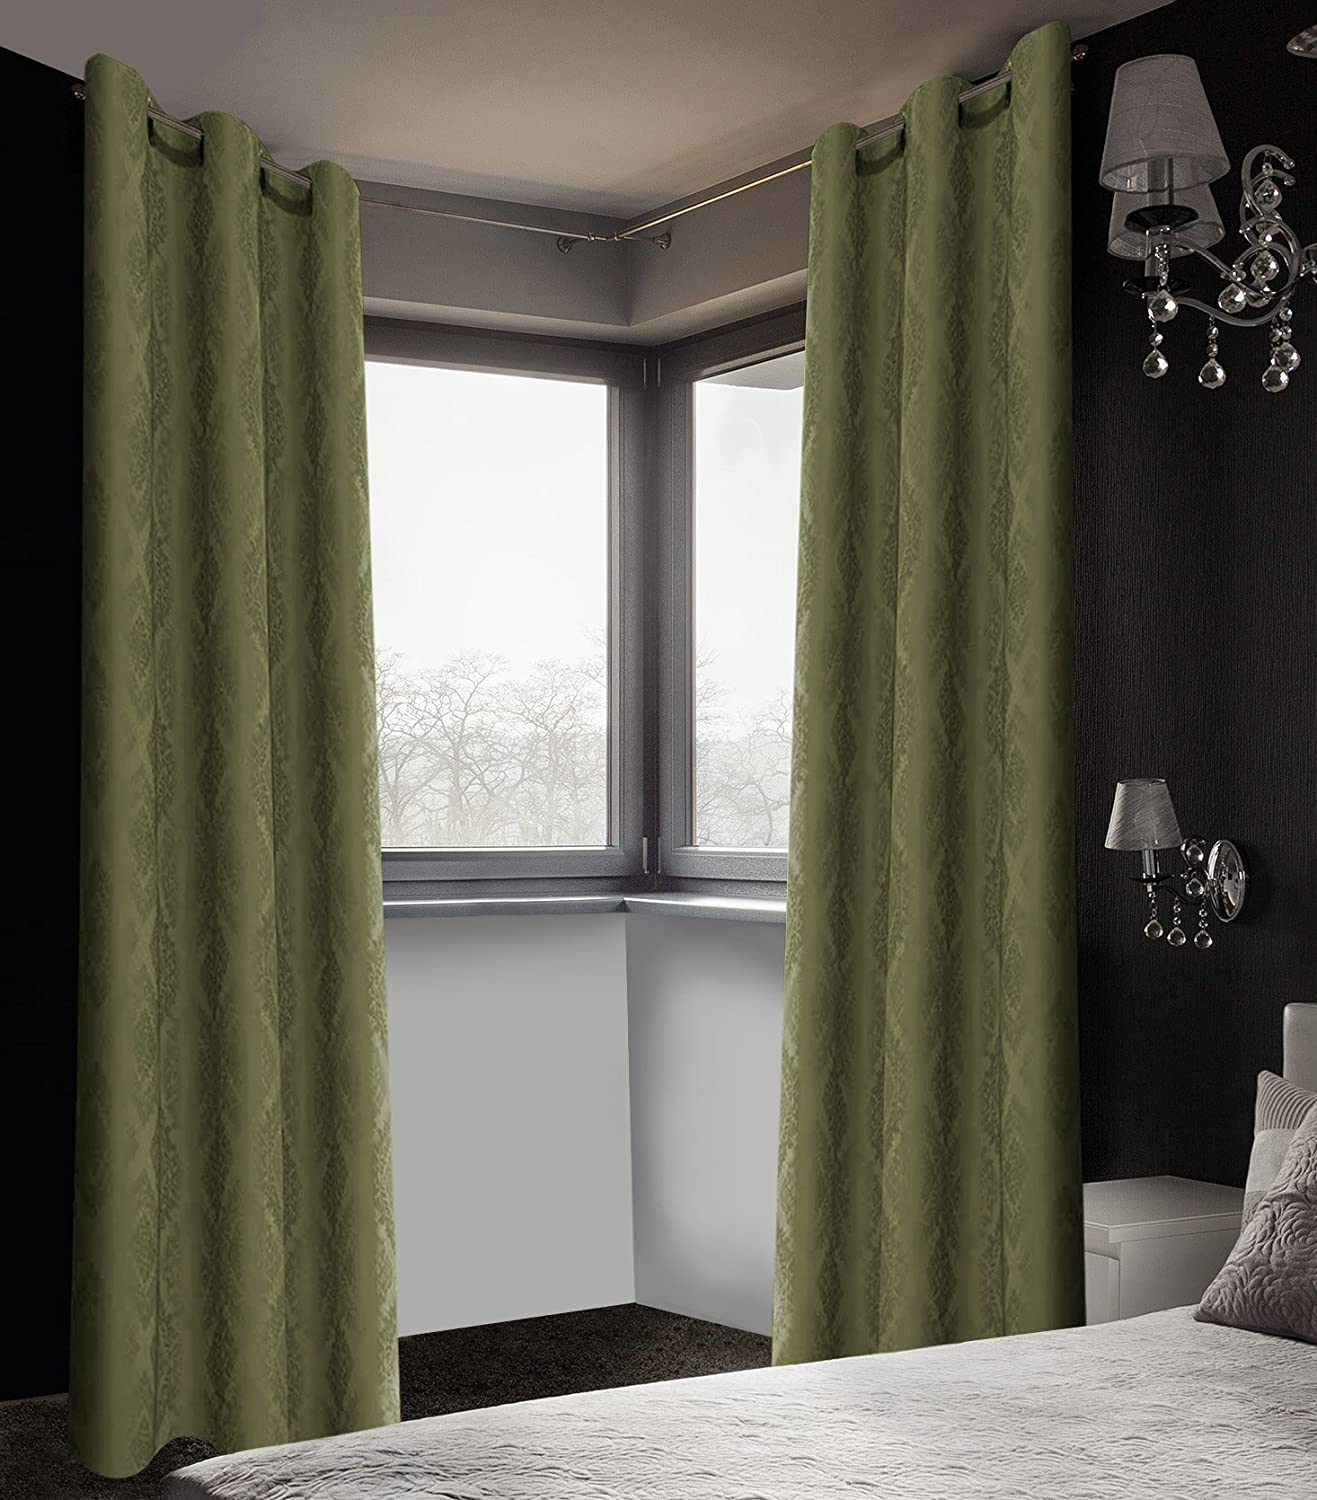 Buy Safdie & Co. Fern Green 2 PCS Set Curtain Panel Brocade Blackout 84L, 2  Piece Online at Low Prices in India - Amazon.in